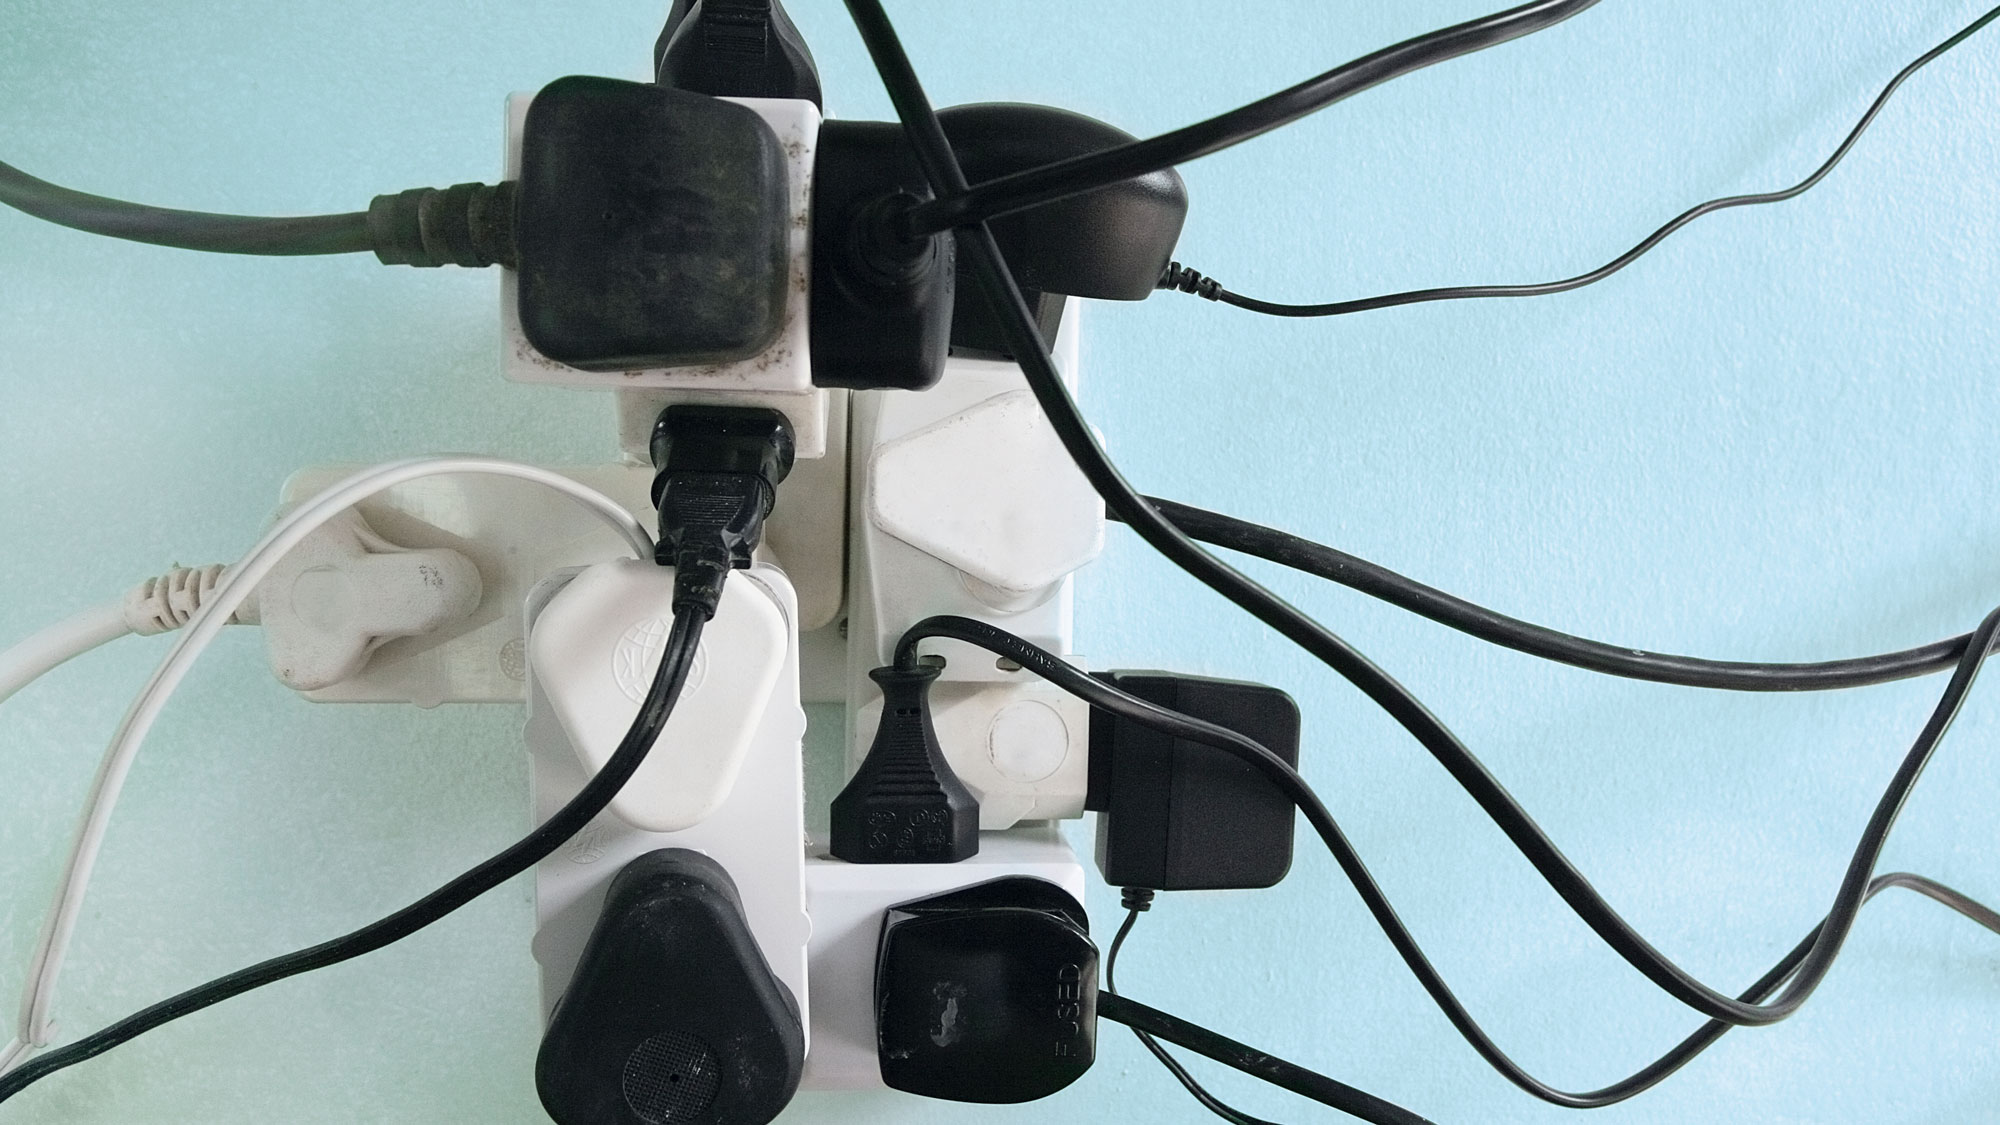 photo of wall outlet with too many plugs